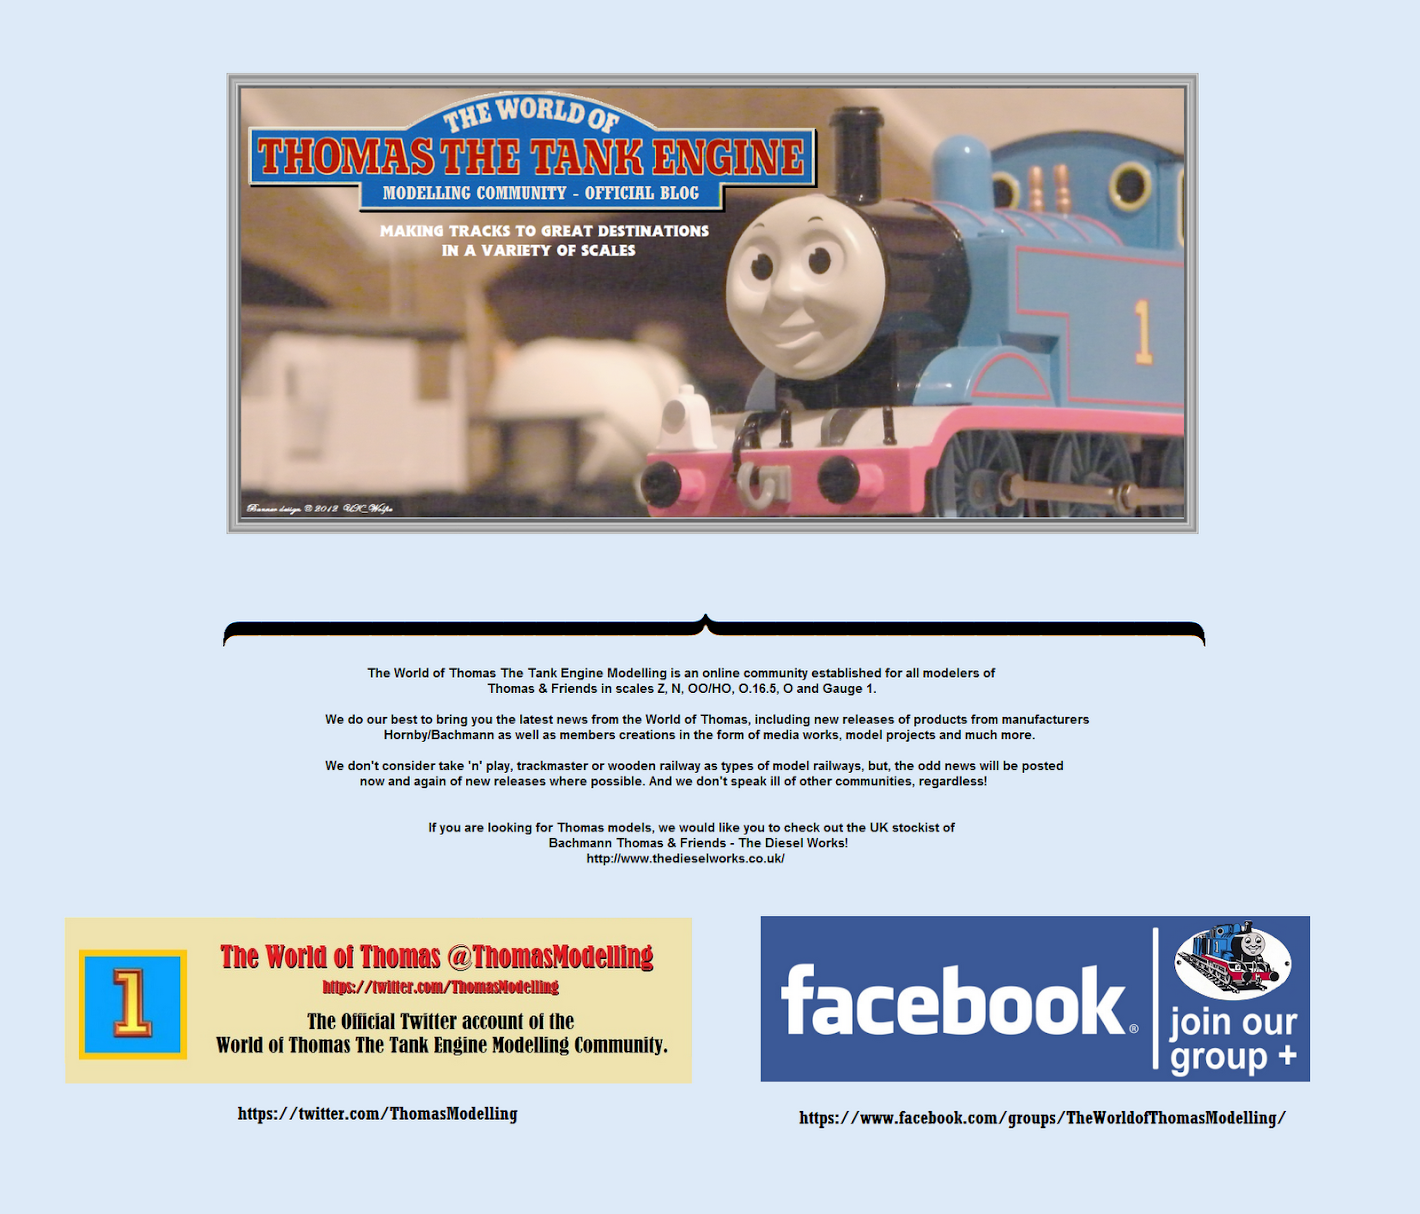 The World of Thomas The Tank Engine Modelling